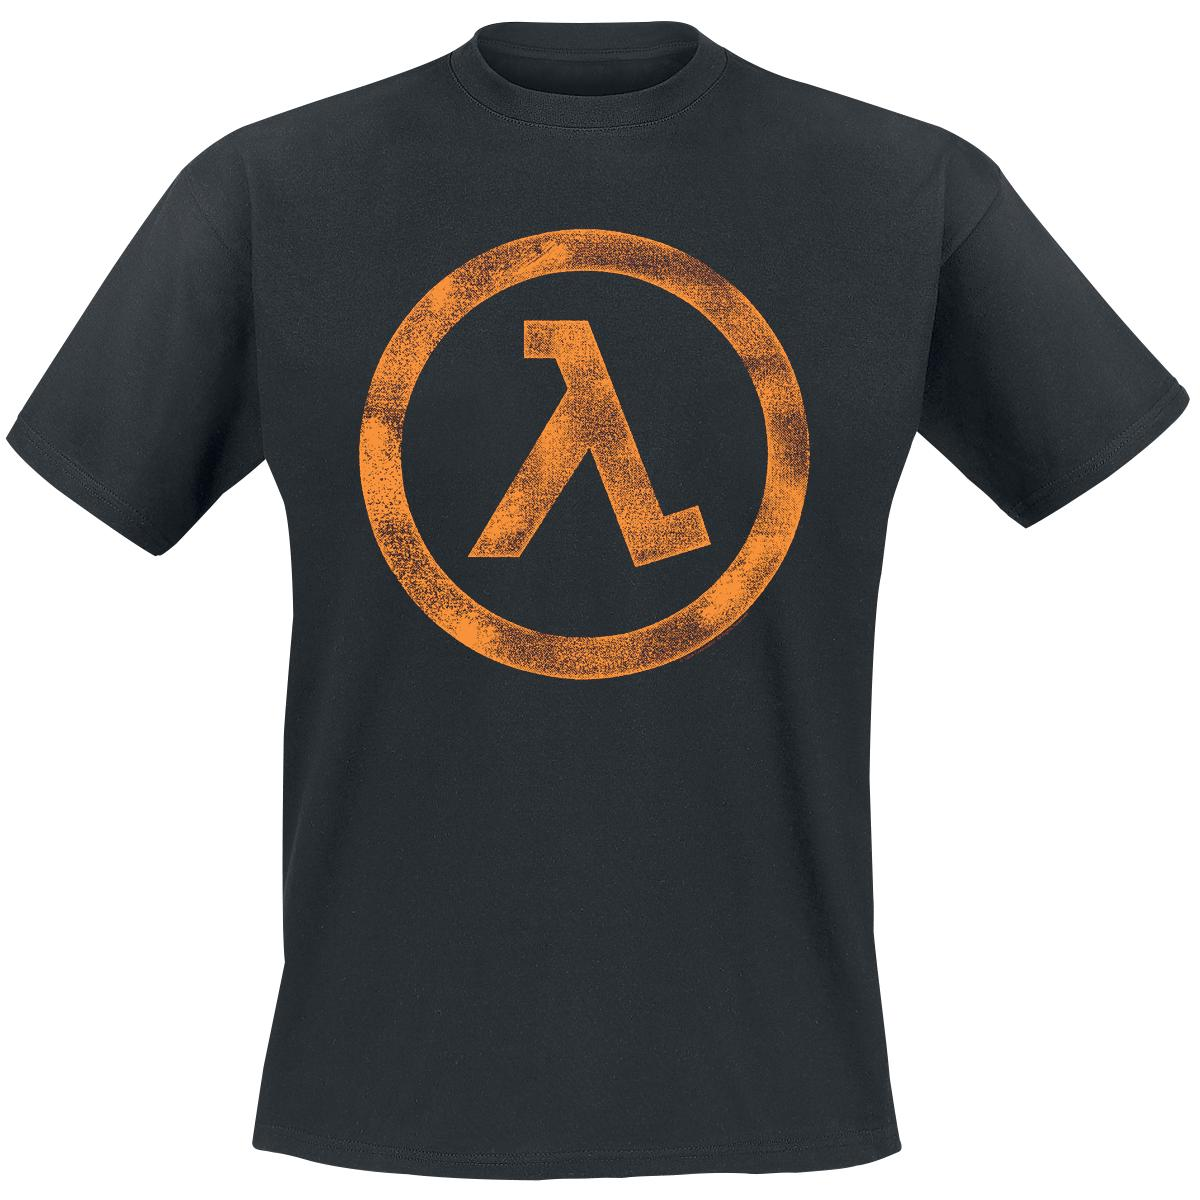 Half-Life 2 - The Orange Box T-shirt Design